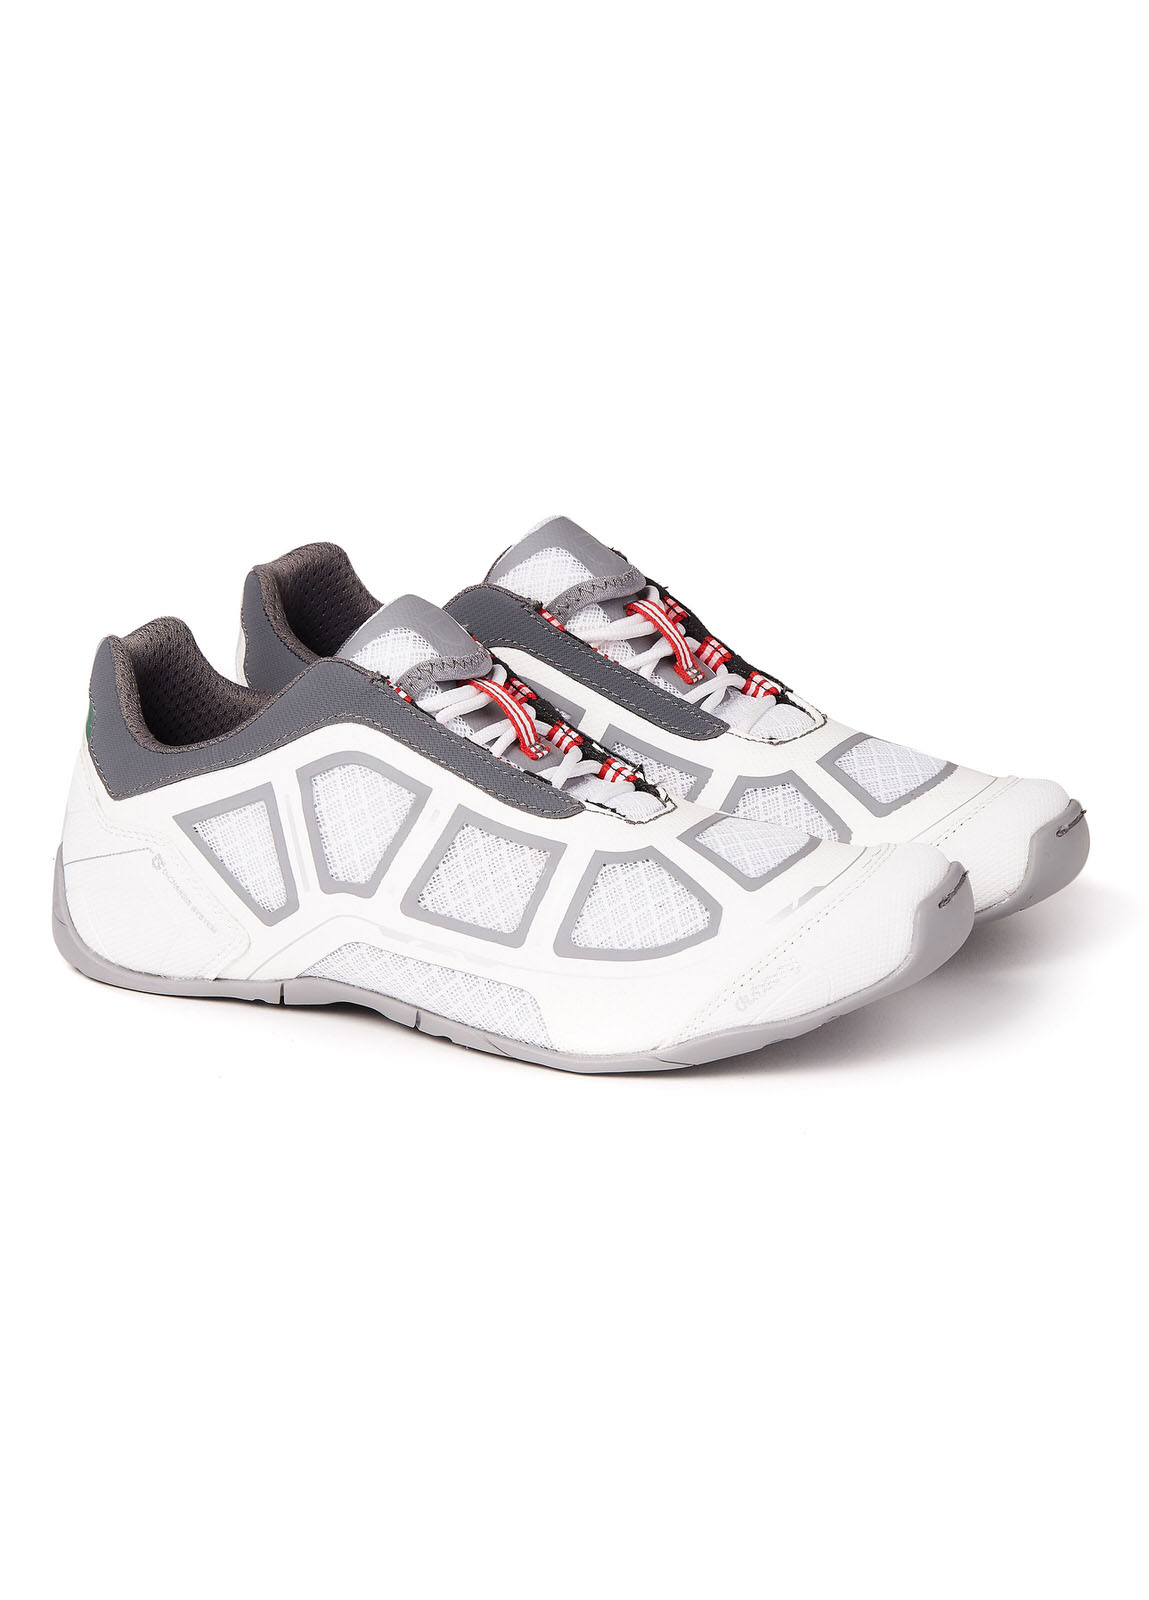 Easkey_Sailing_Shoe_White_Image_1